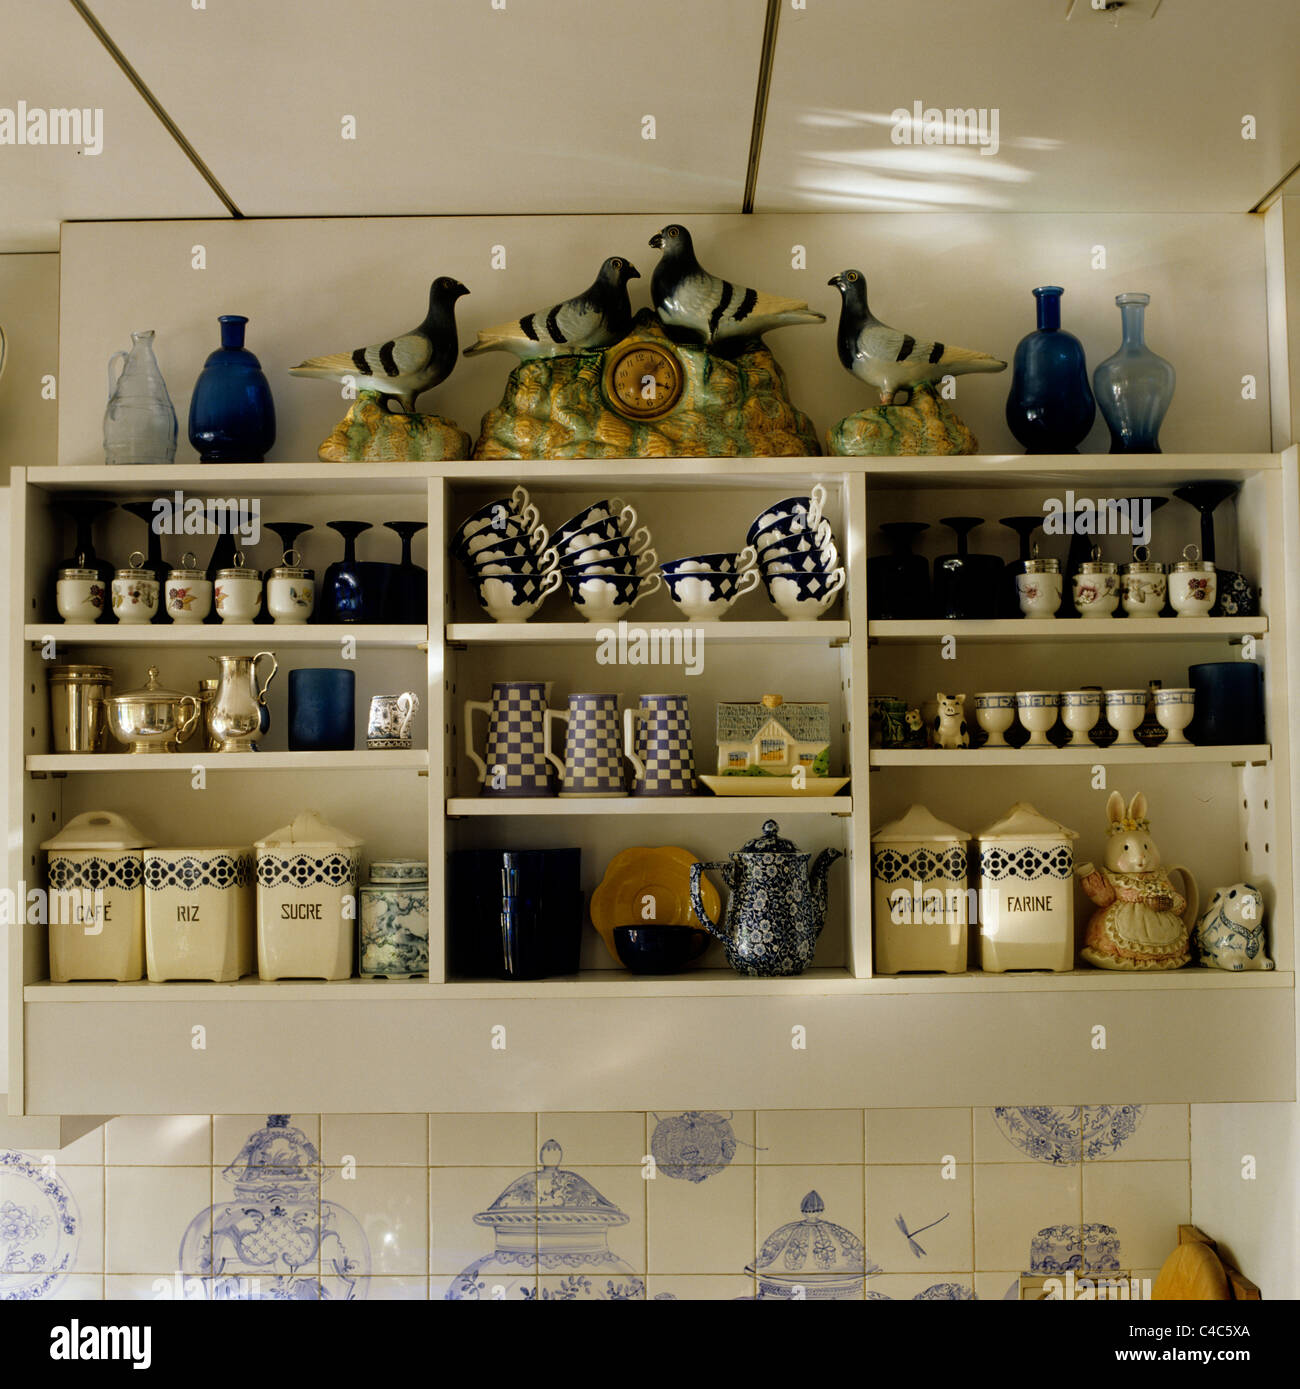 Assorted Country Style Crockery In Kitchen Shelving